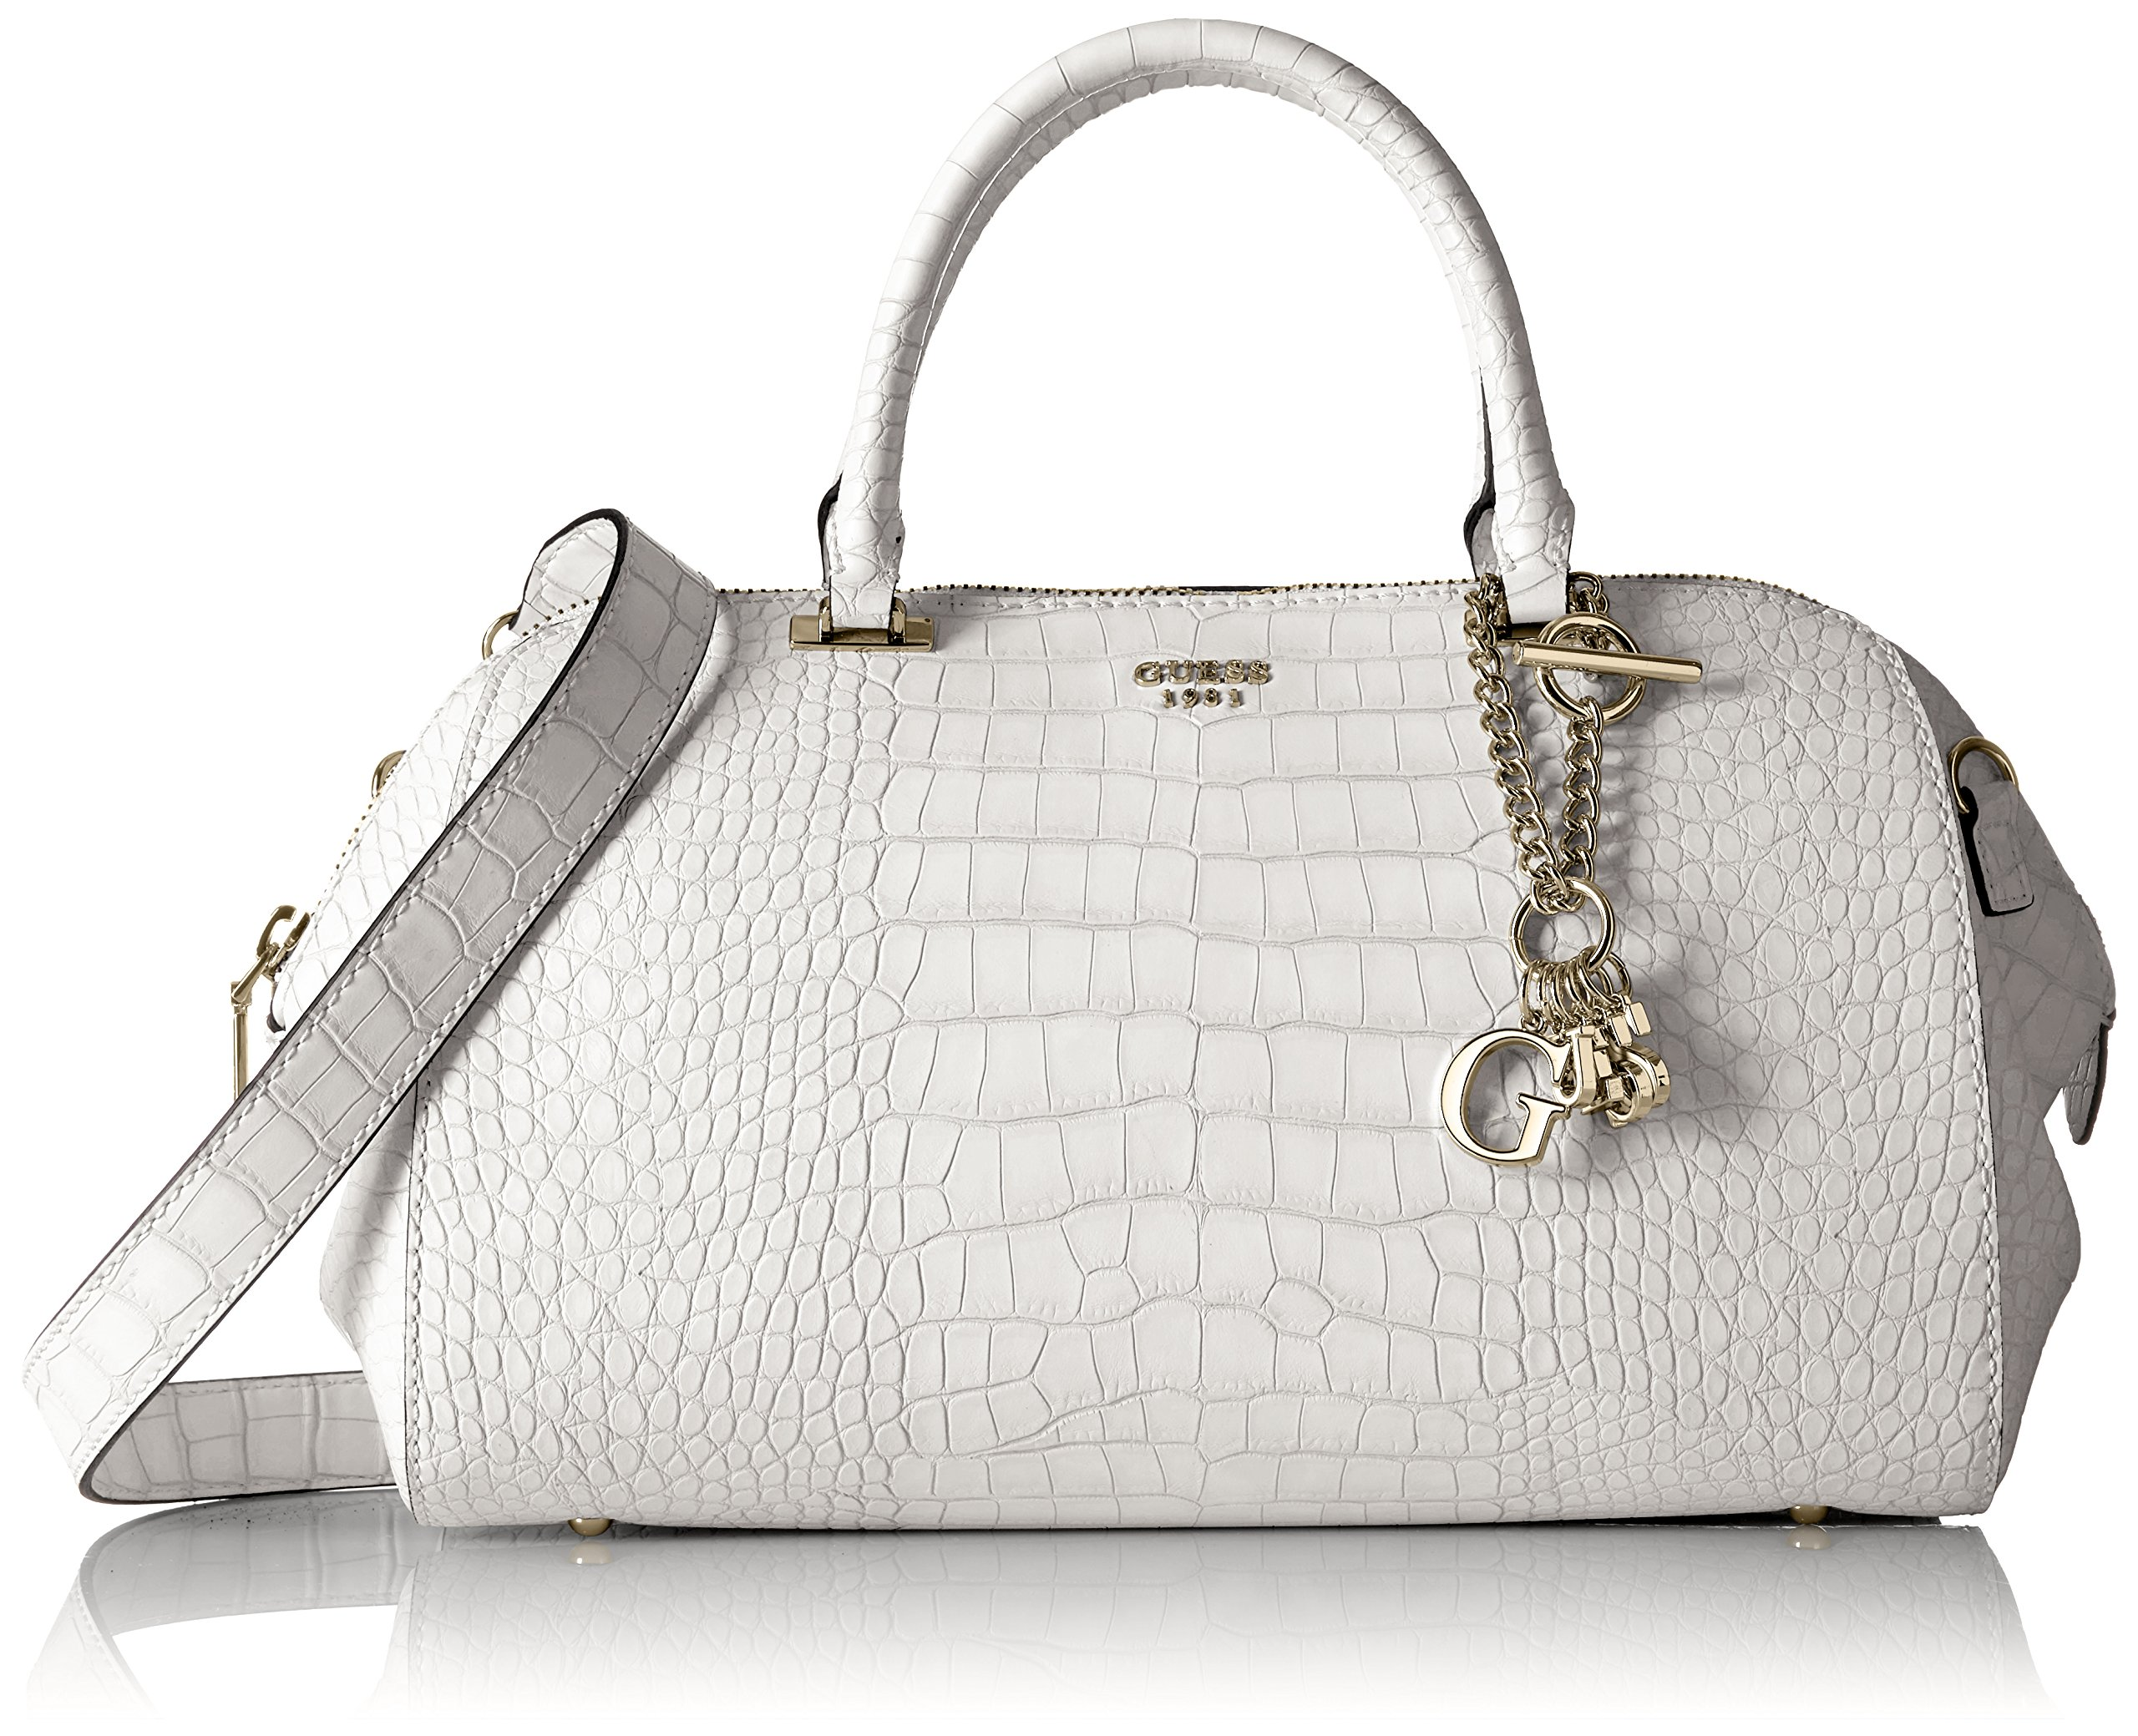 GUESS Trylee Satchel, Stone by GUESS